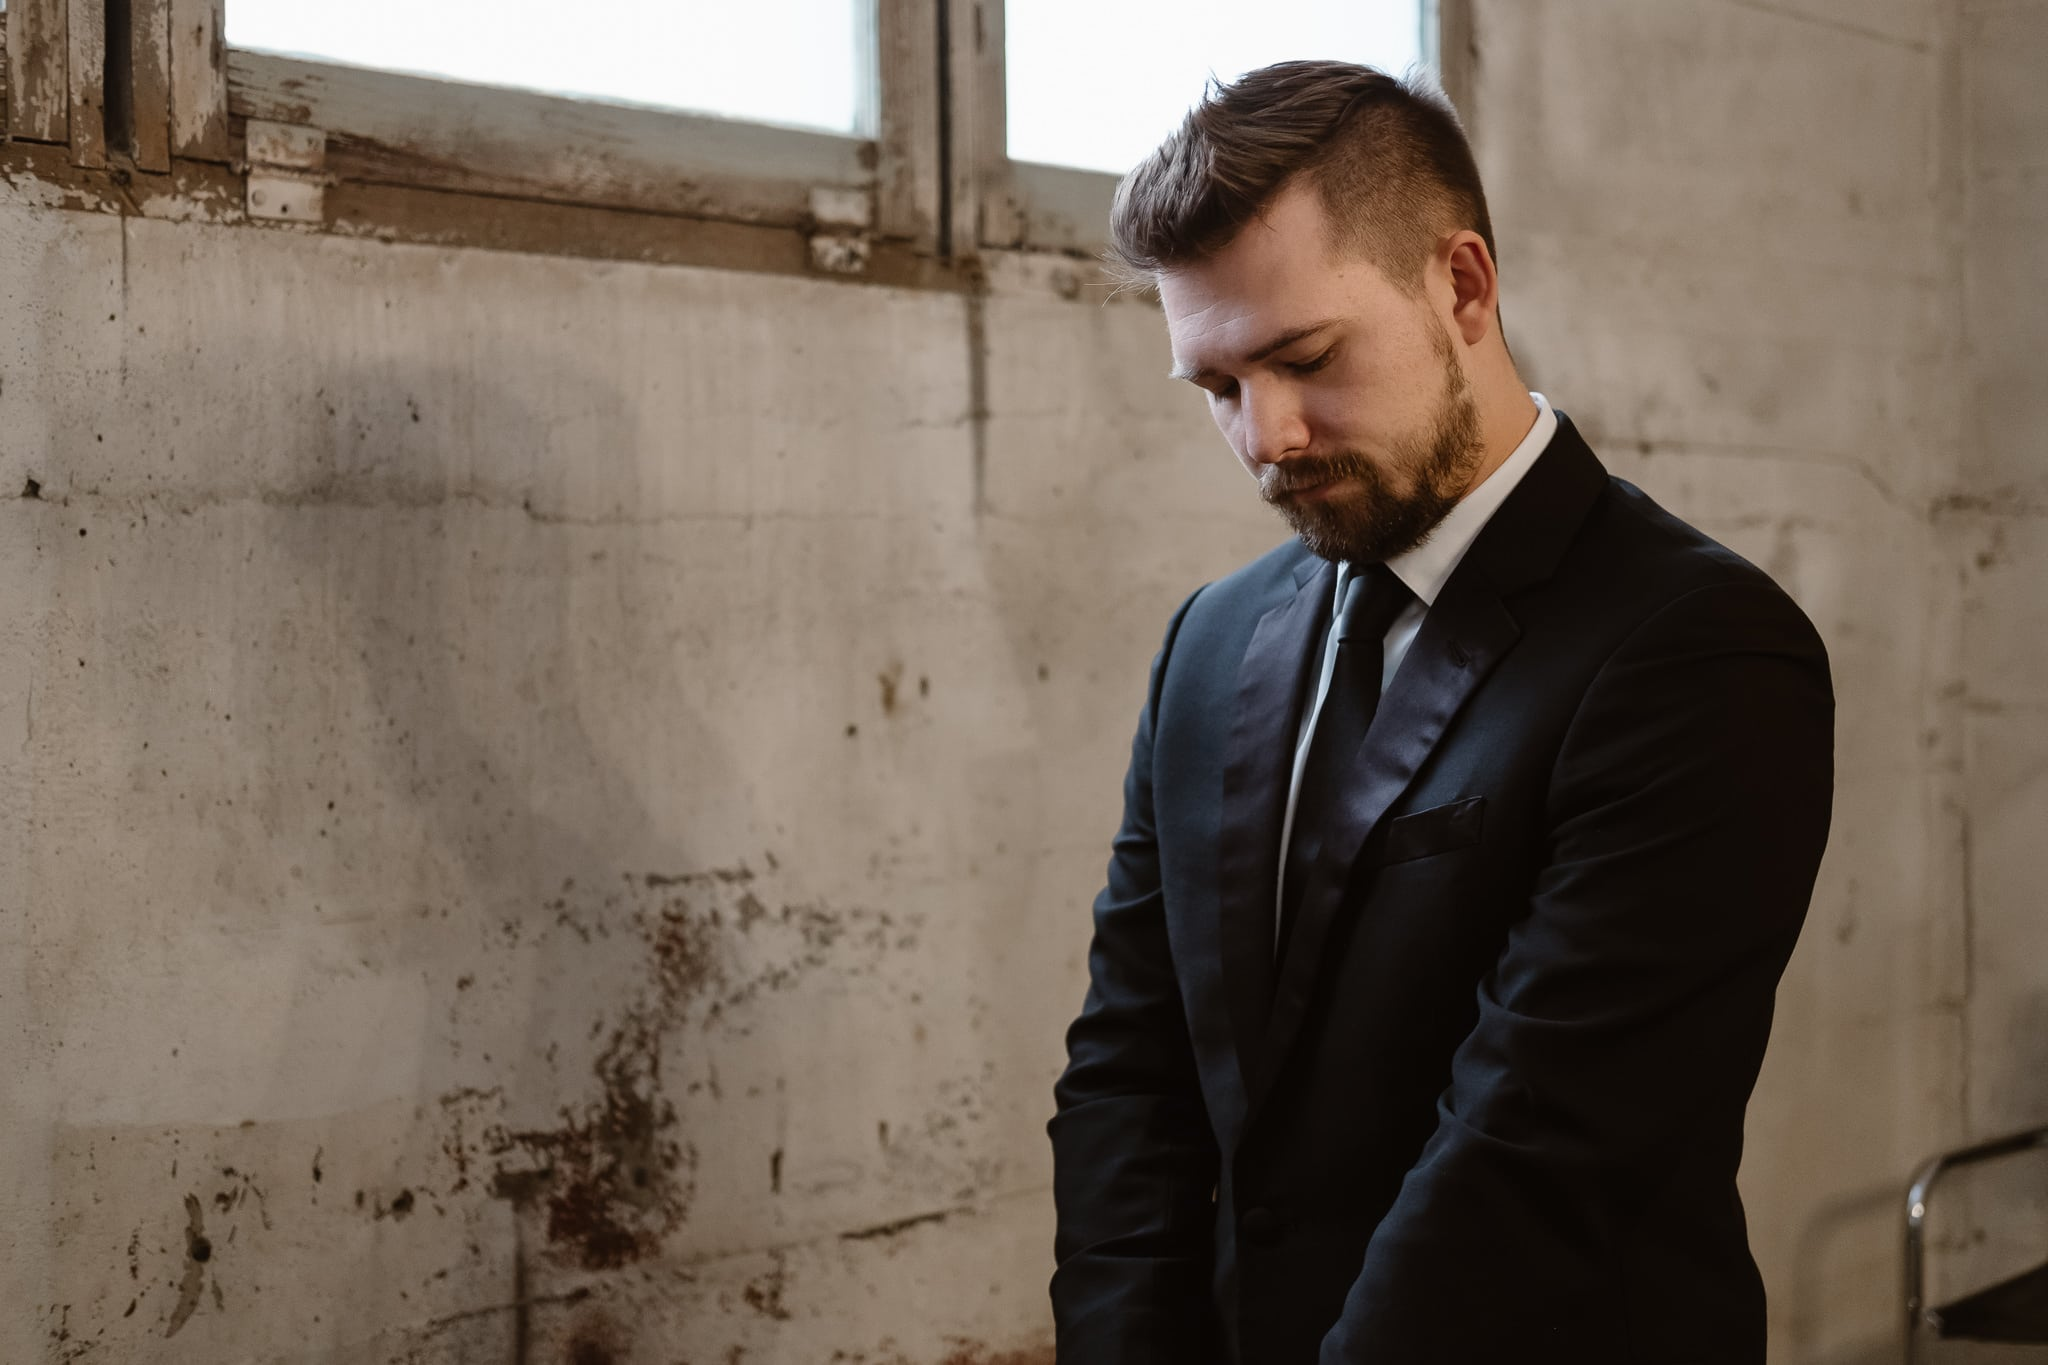 St Vrain Wedding Photographer | Longmont Wedding Photographer | Colorado Winter Wedding Photographer, Colorado industrial chic wedding, Groom getting ready,